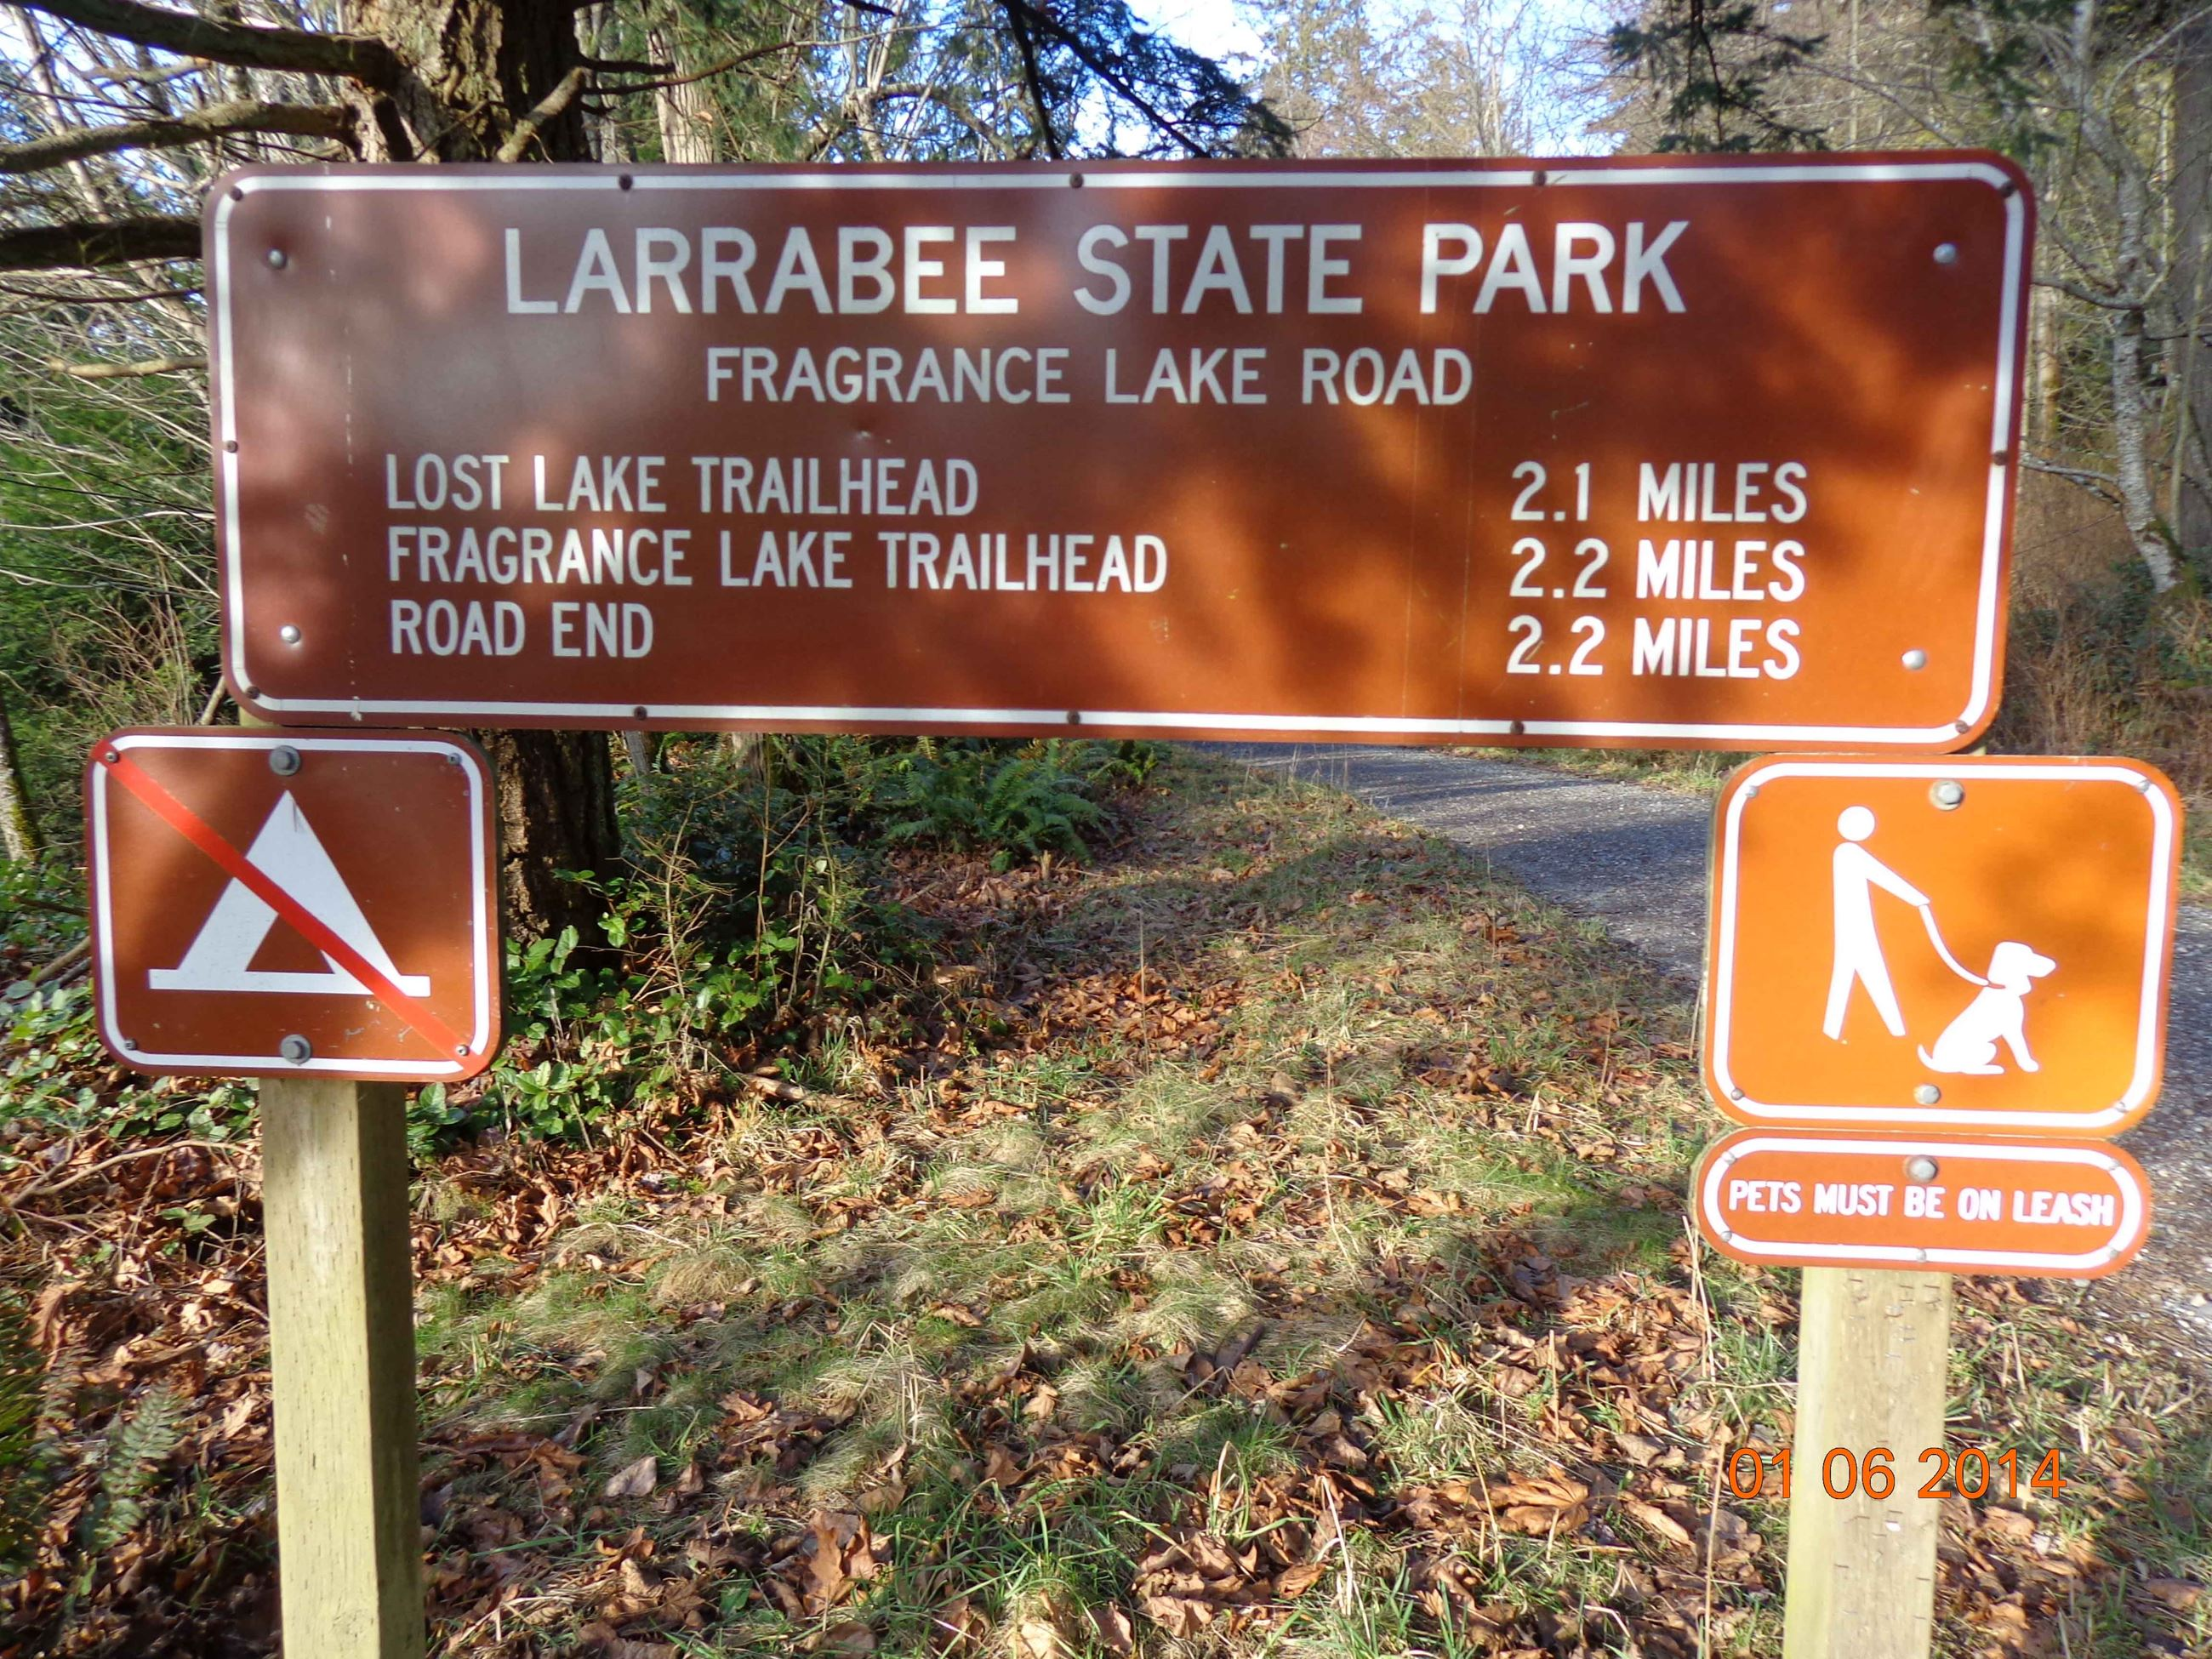 Fragrance lake trailhead sign